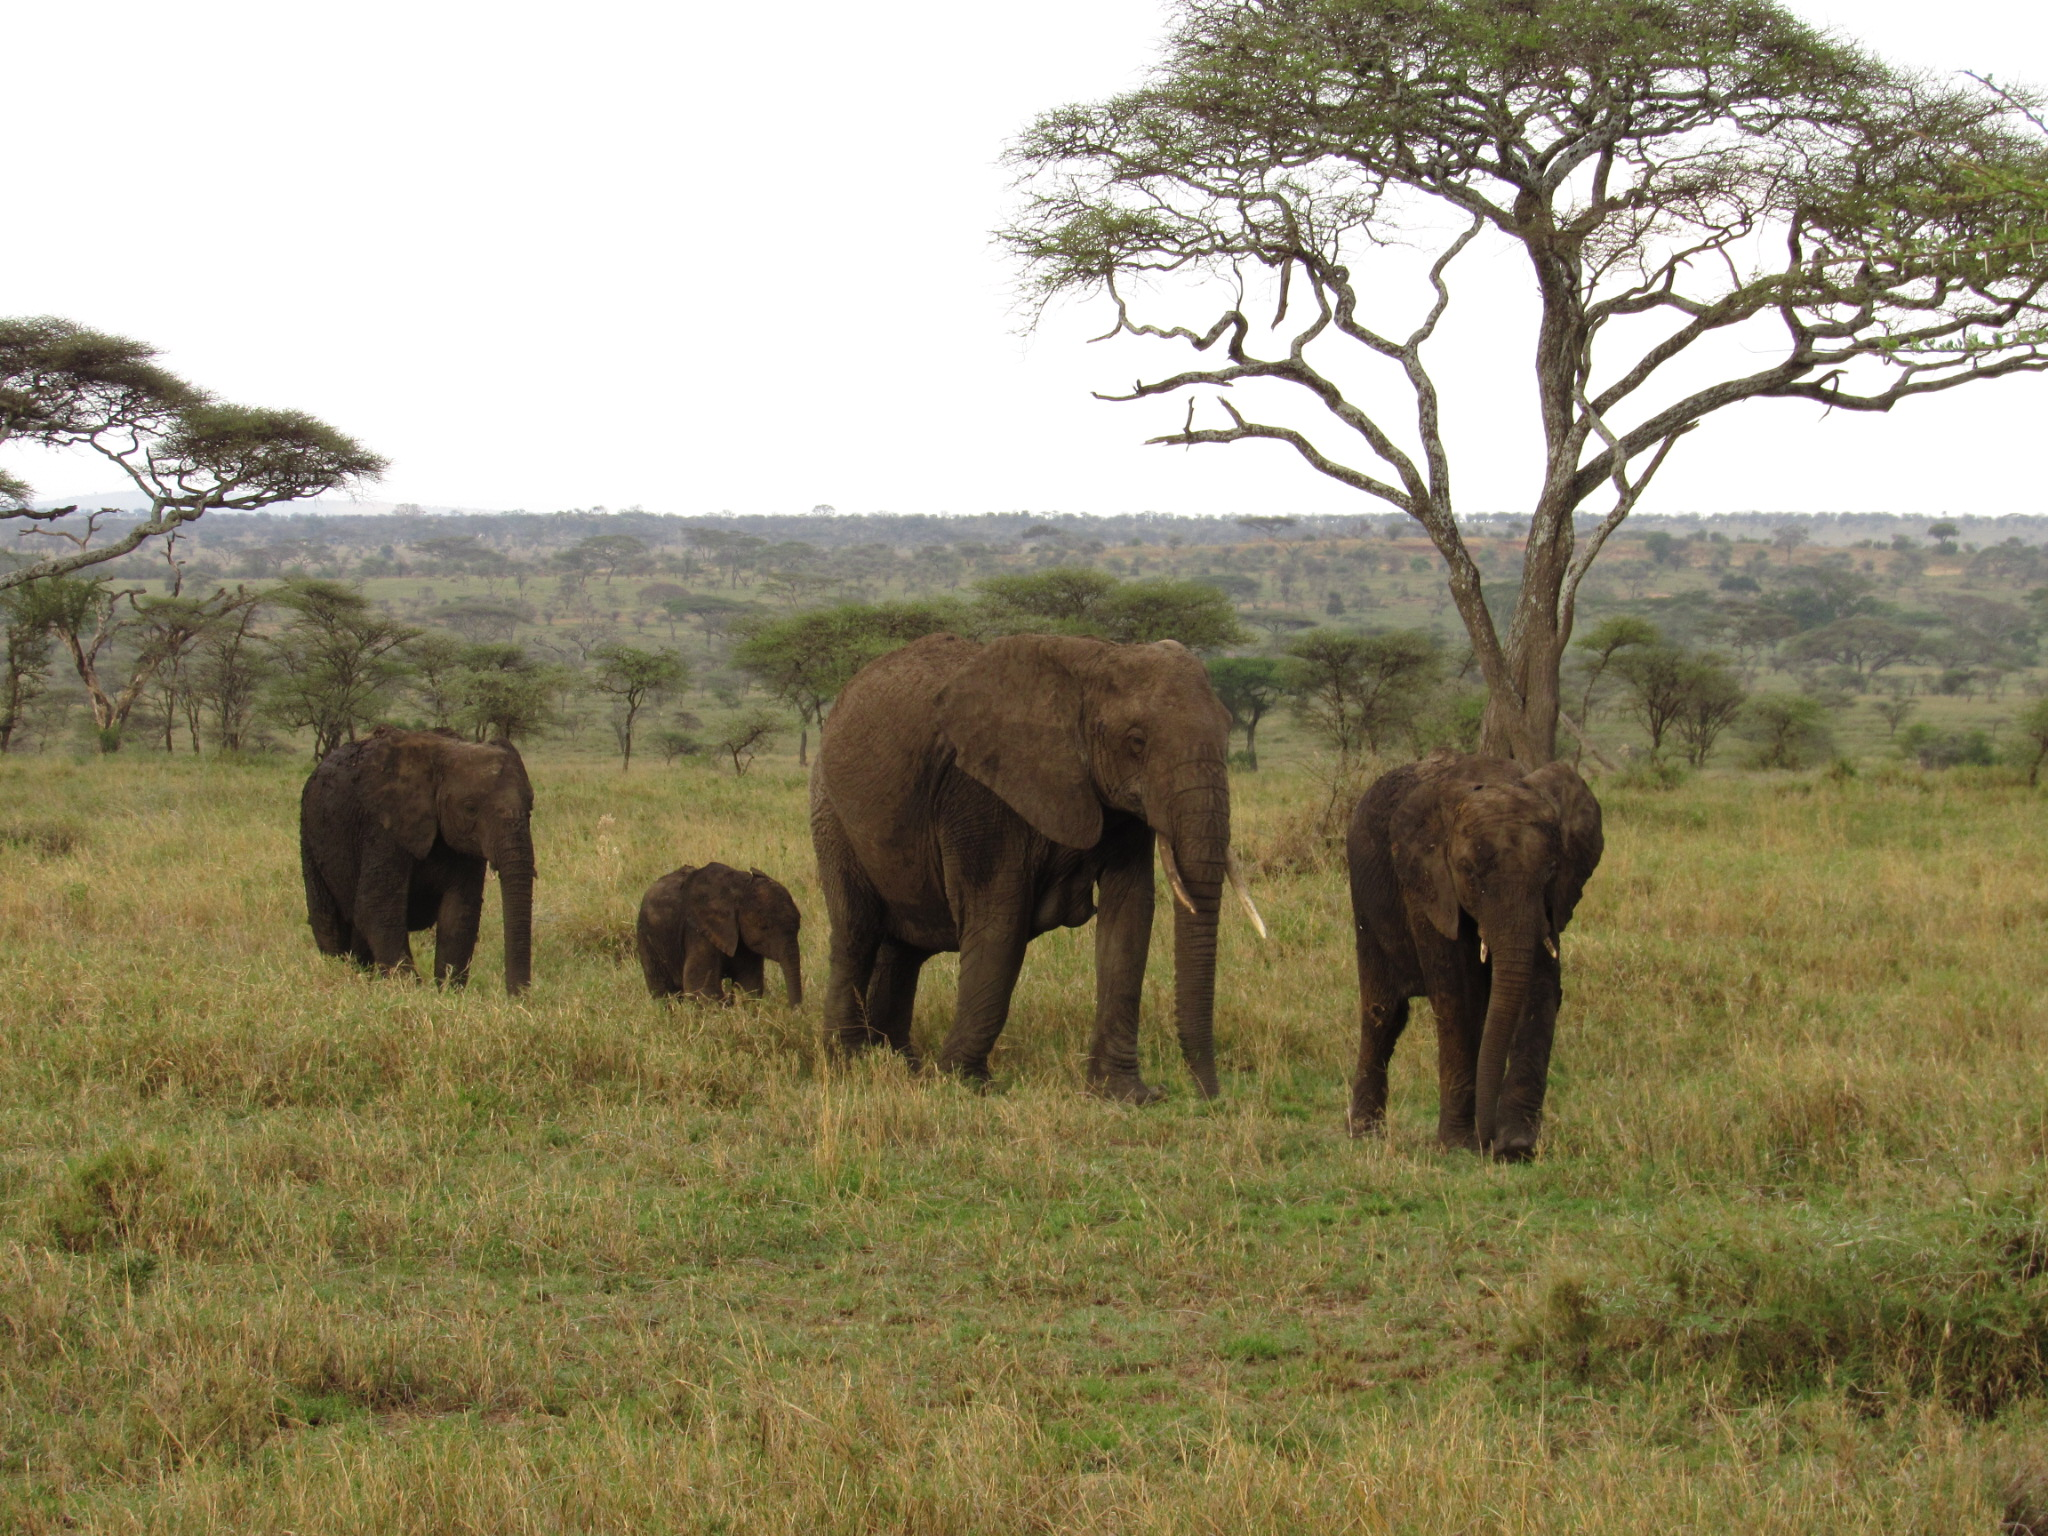 A groups of four elephants